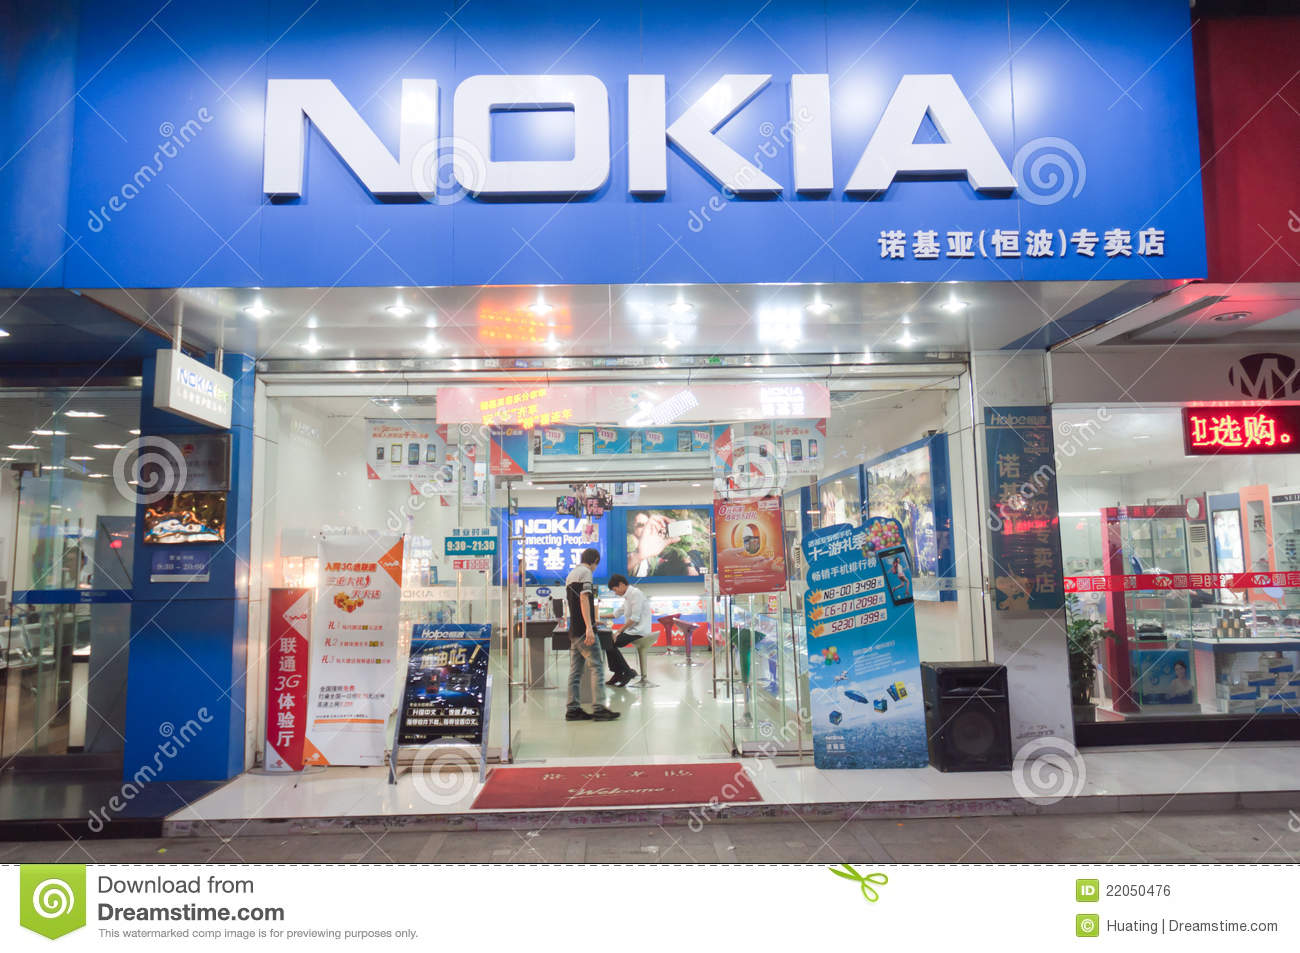 Nokia shop in China